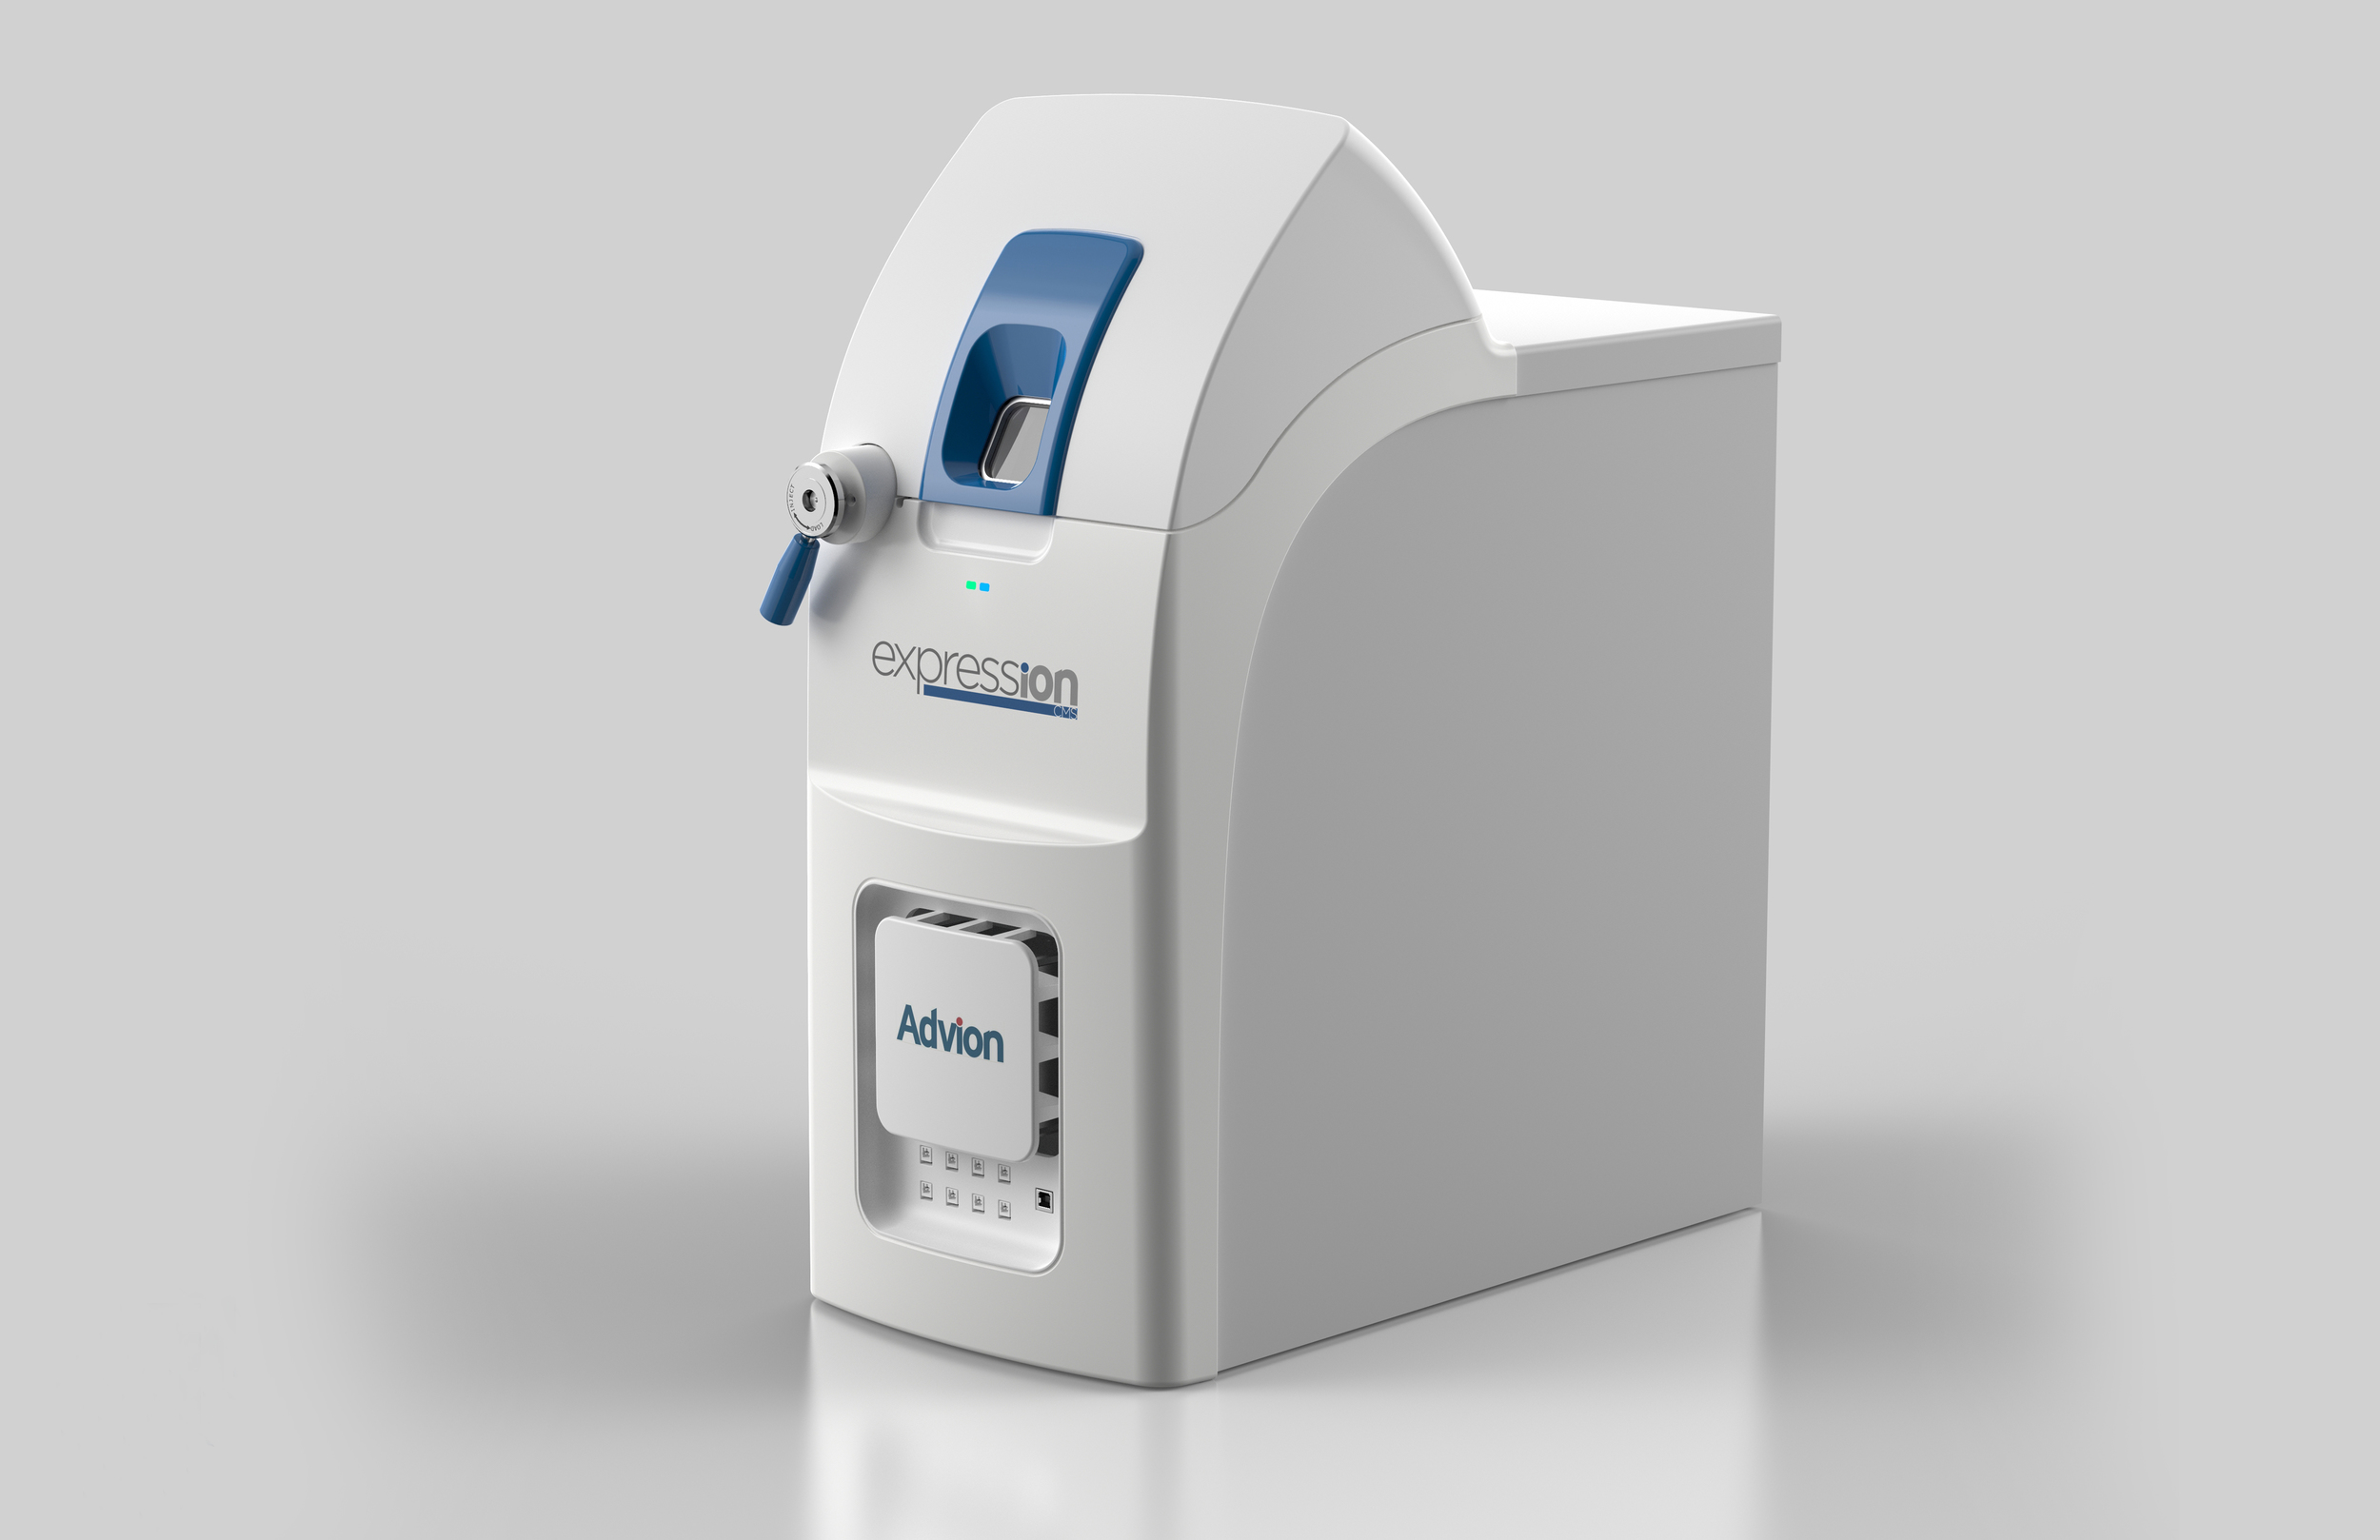 Advion Expression High Perfomance Compact Mass Spectrometer